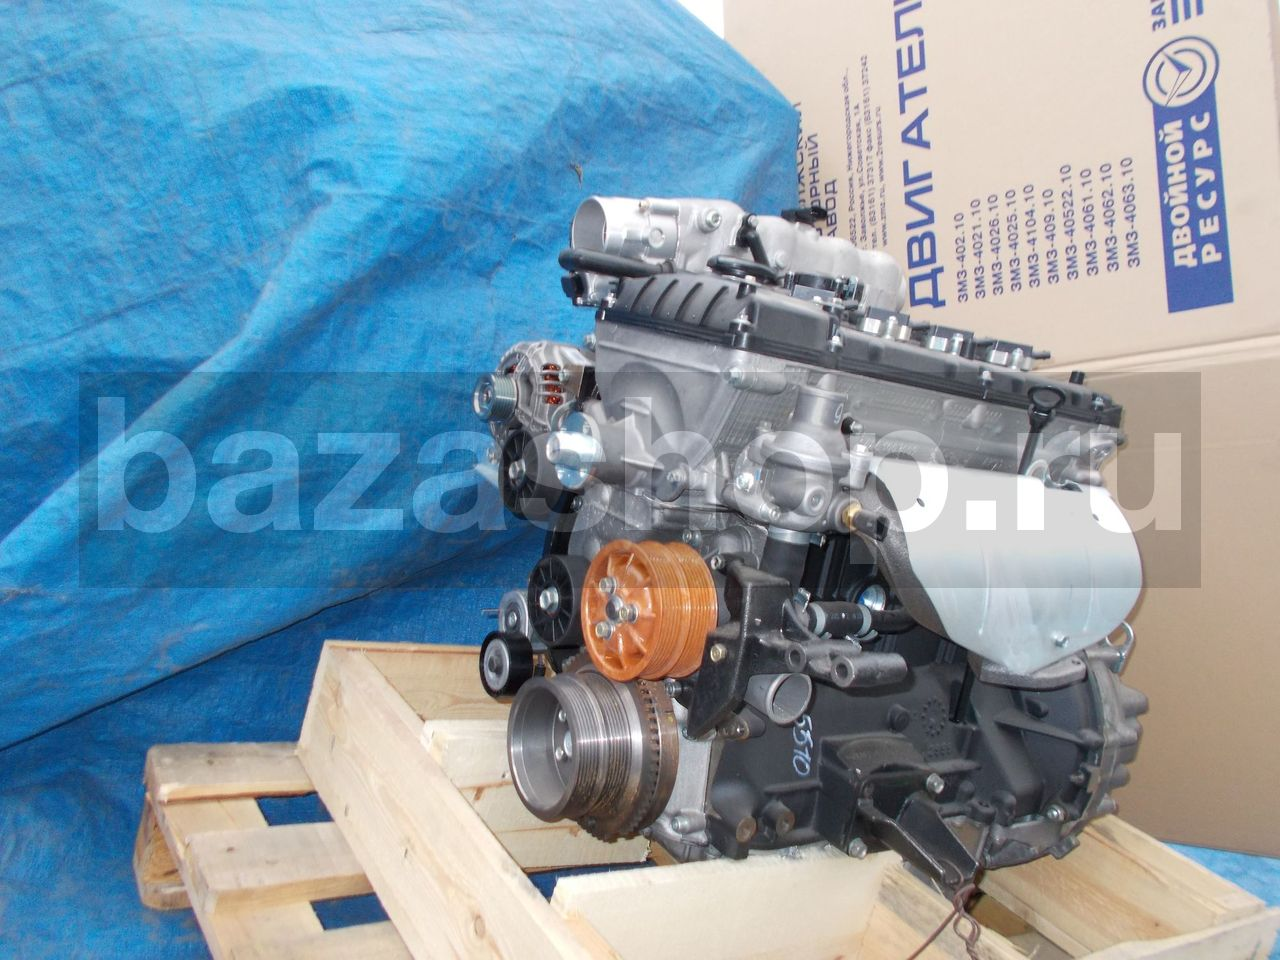 ENGINE, ASS / 40905.1000400-510 (-93) (УАЗ 2360 комплектация 23602-143-02)